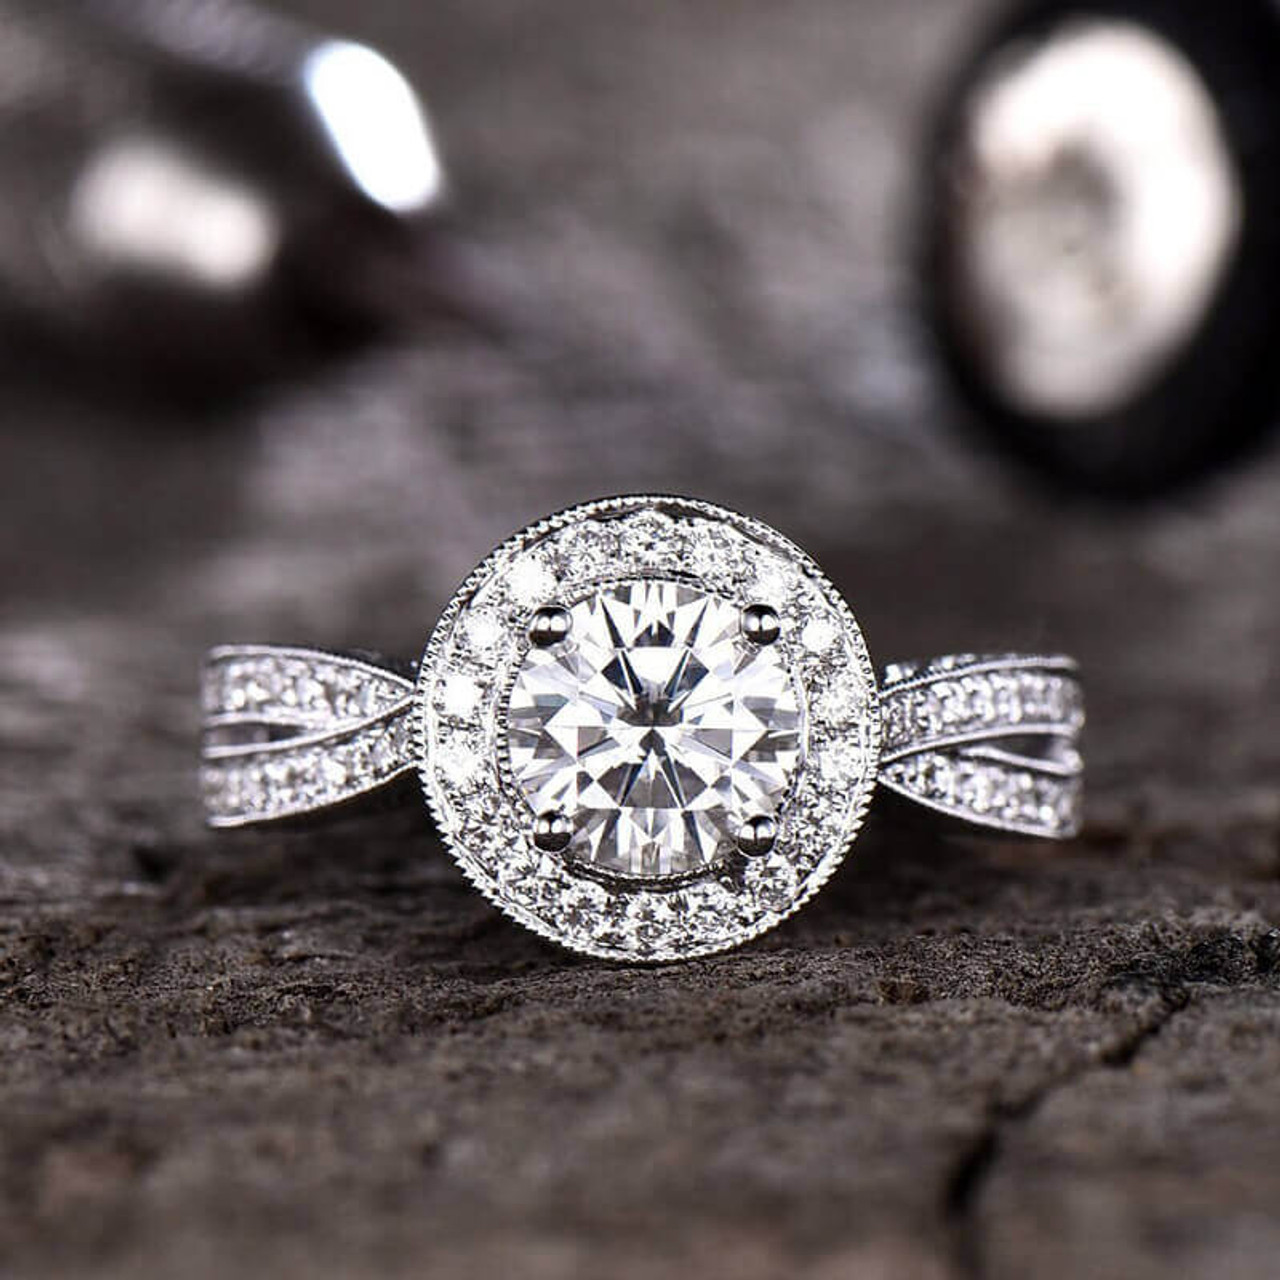 Details about  /Round Cut Solitaire Style Ladies Engagement Ring Wedding Bridal 2 Piece Band